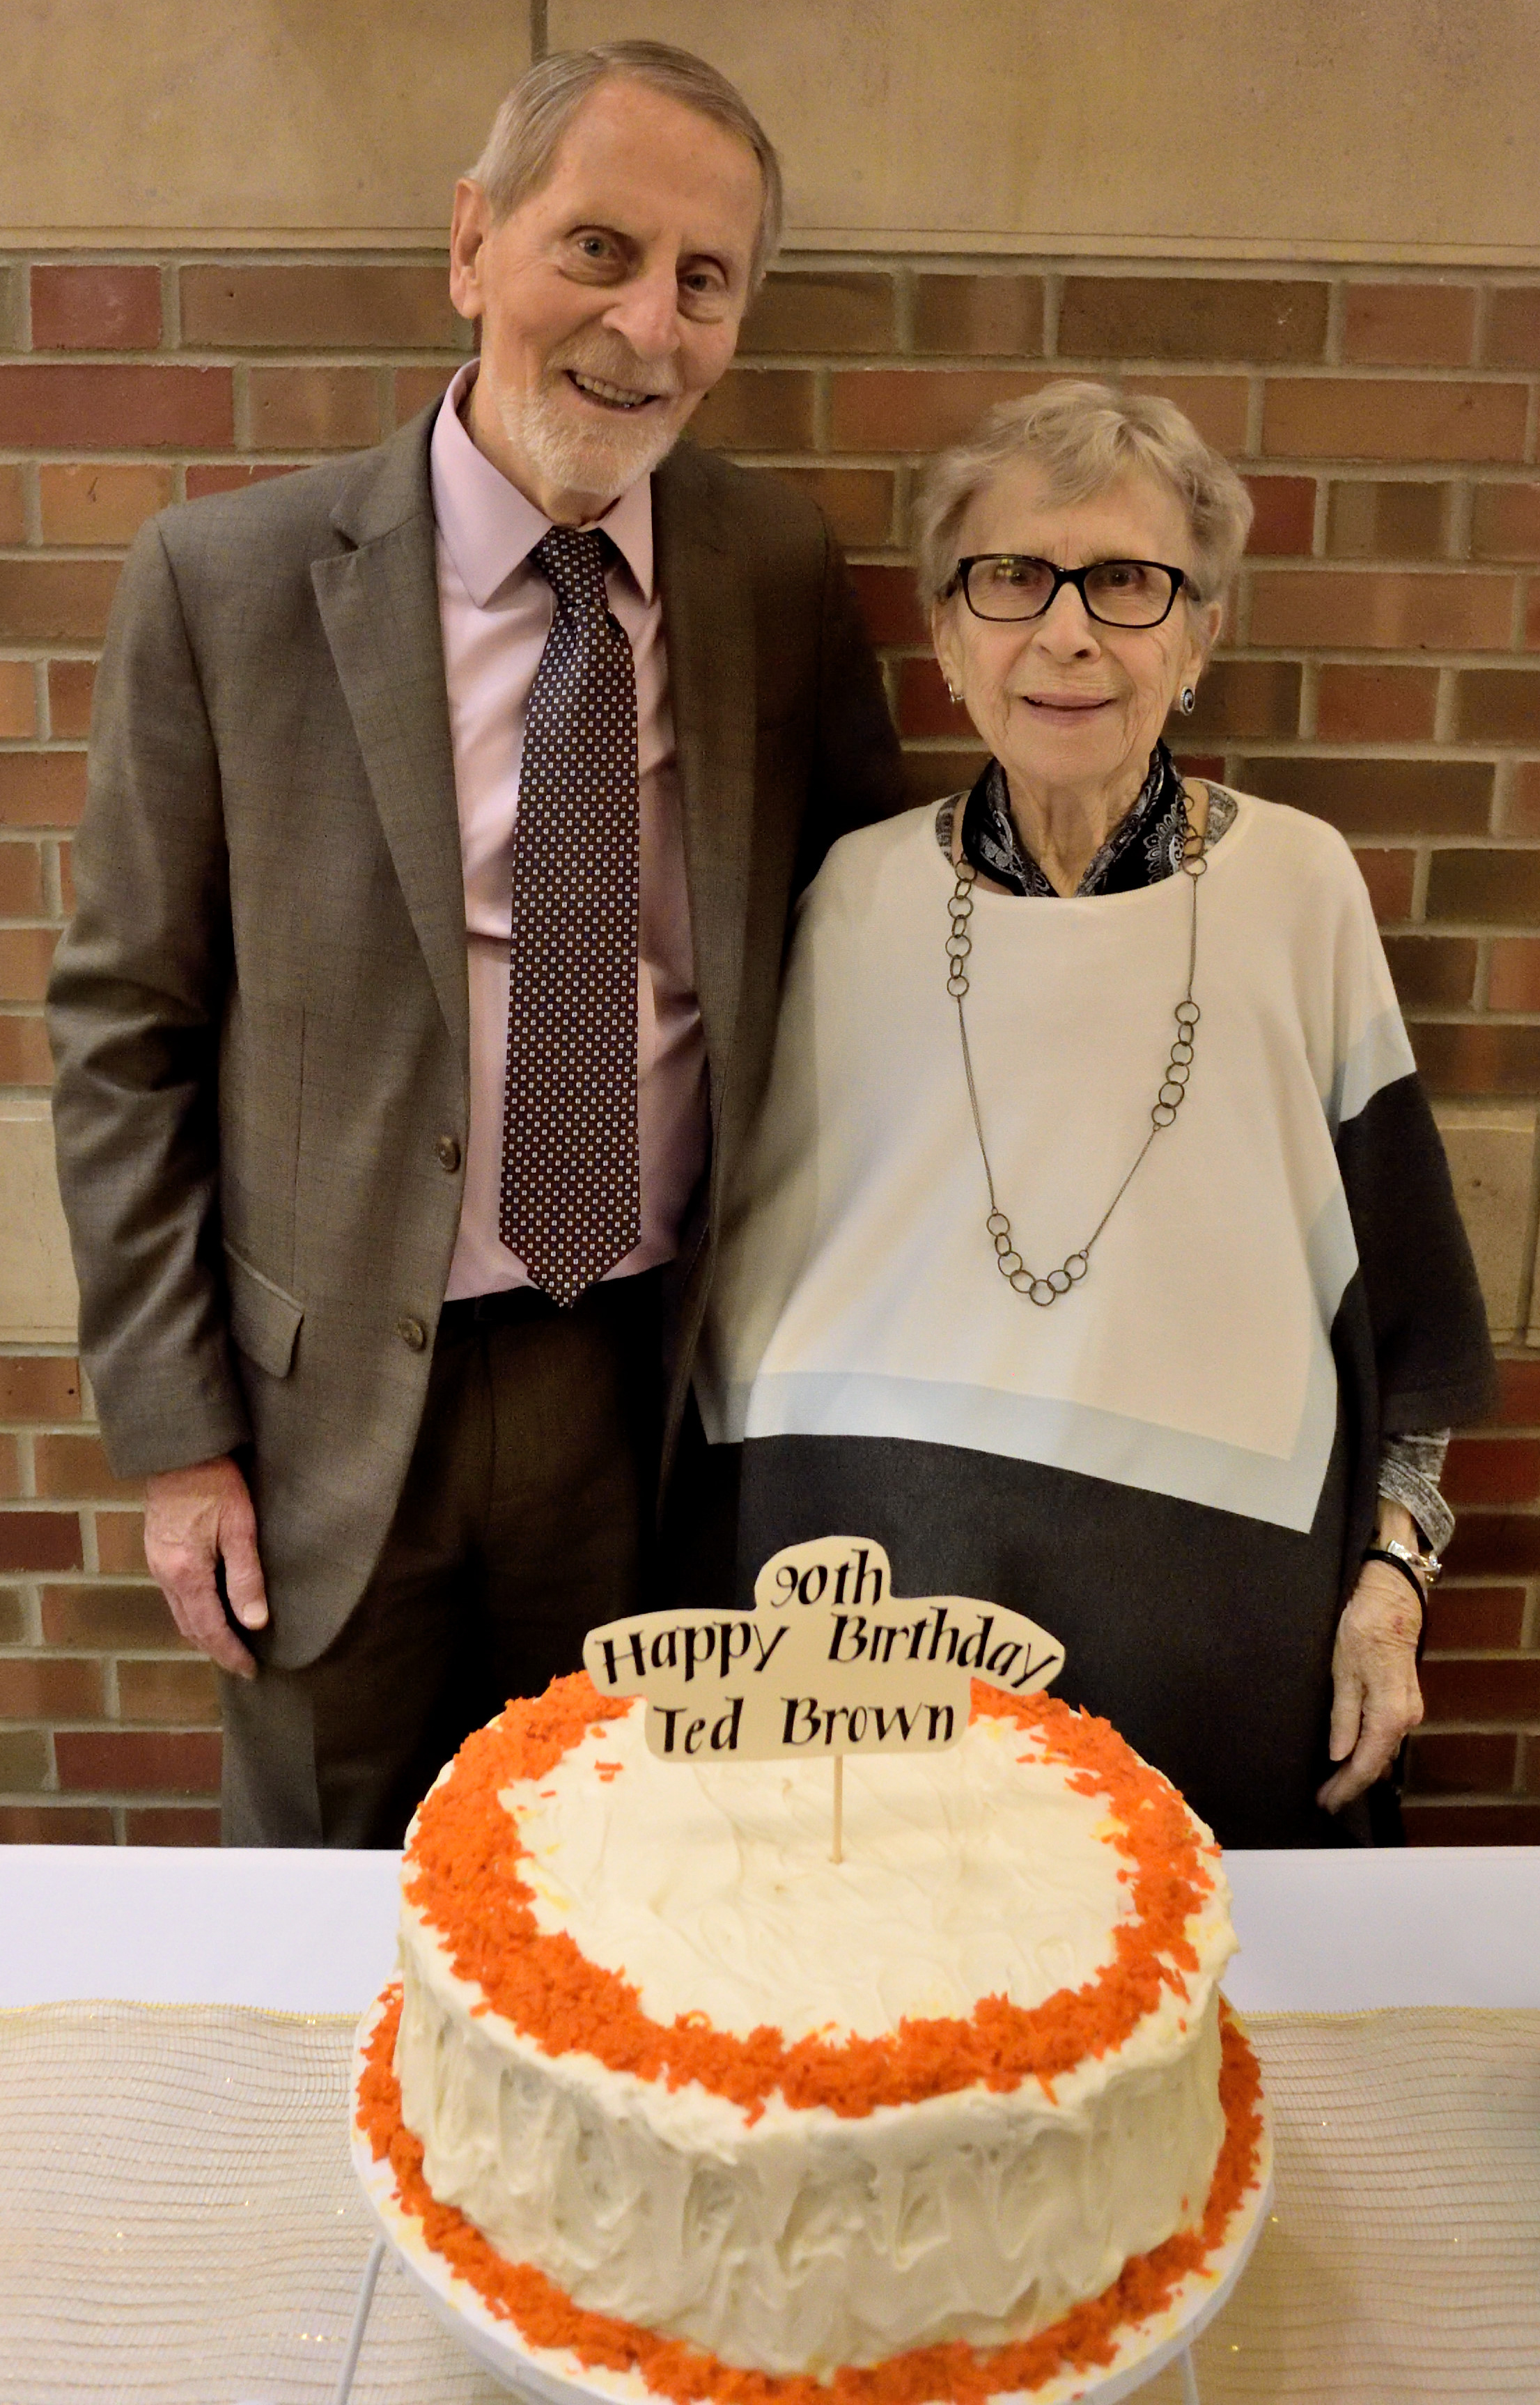 Ted & Audrey with his 90th birthday cake